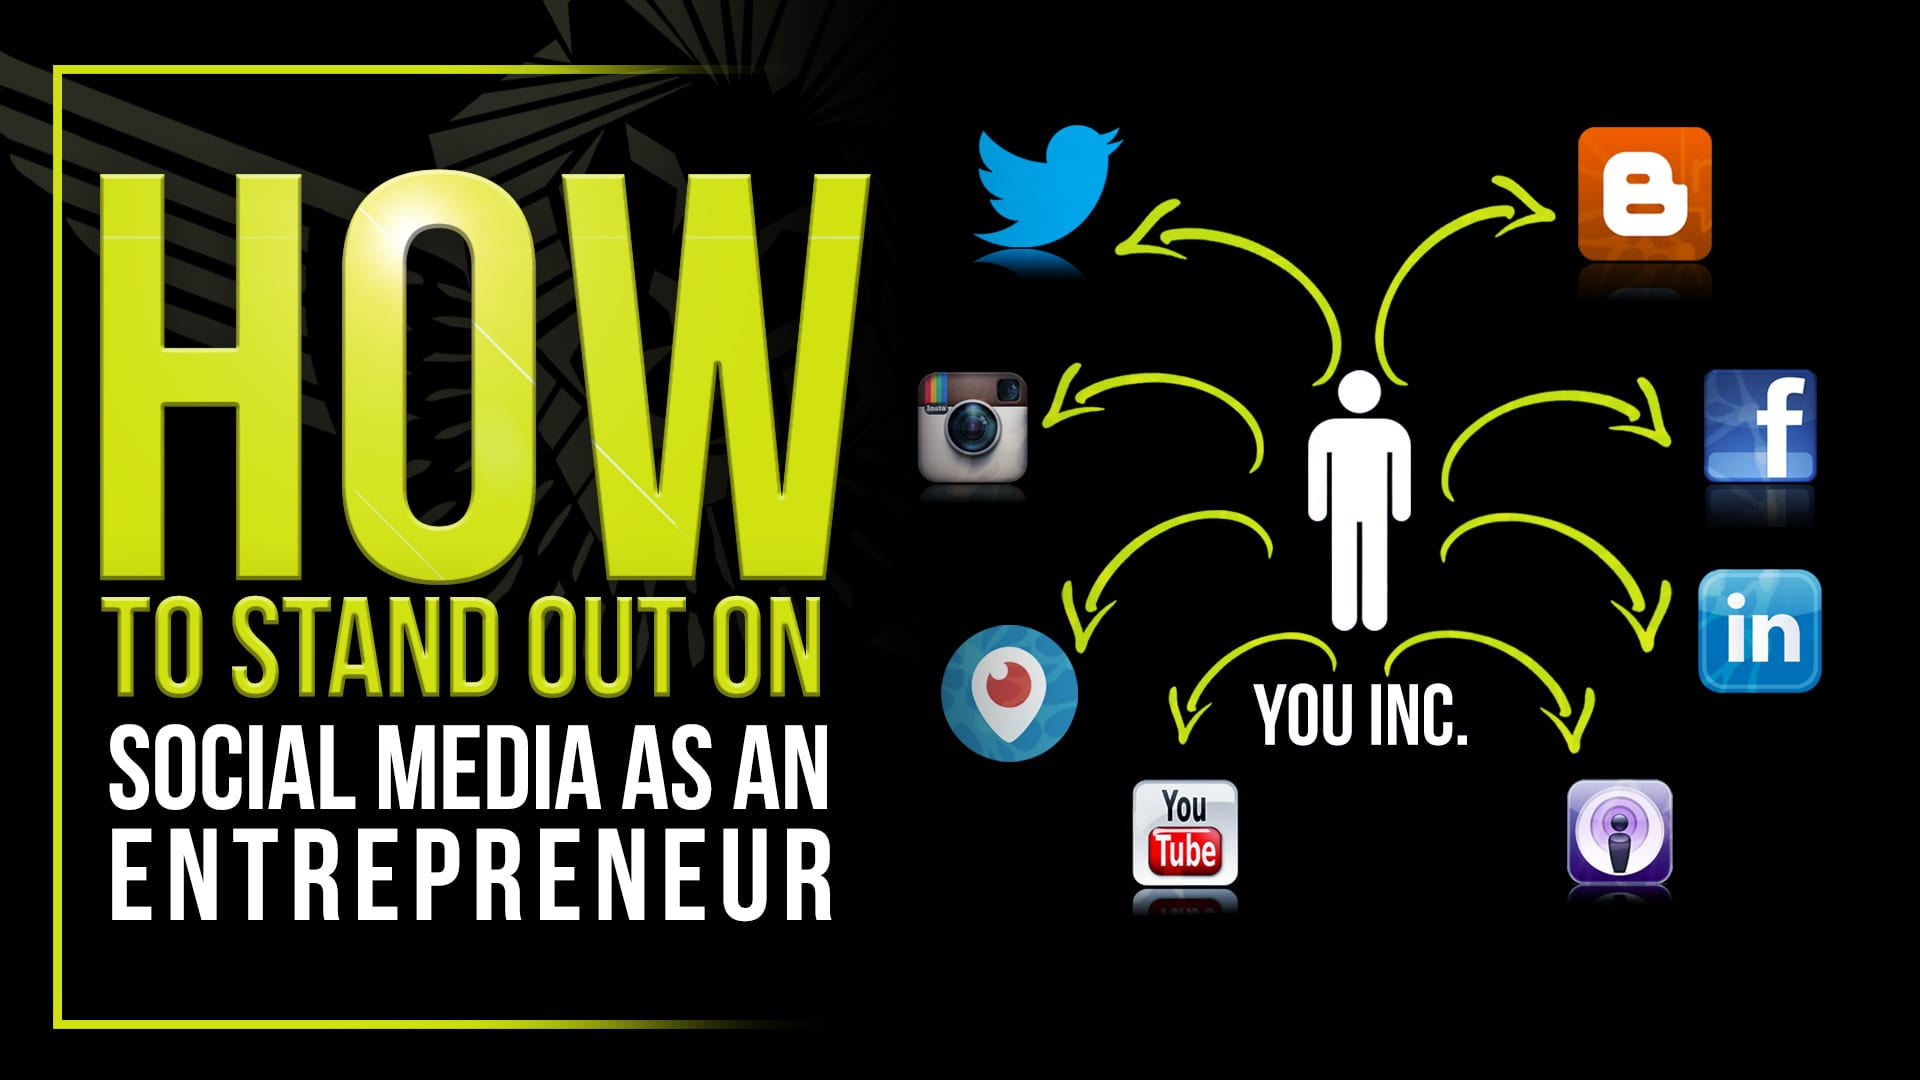 How to stand out on social media as an entrepreneur patrick bet david fandeluxe Choice Image